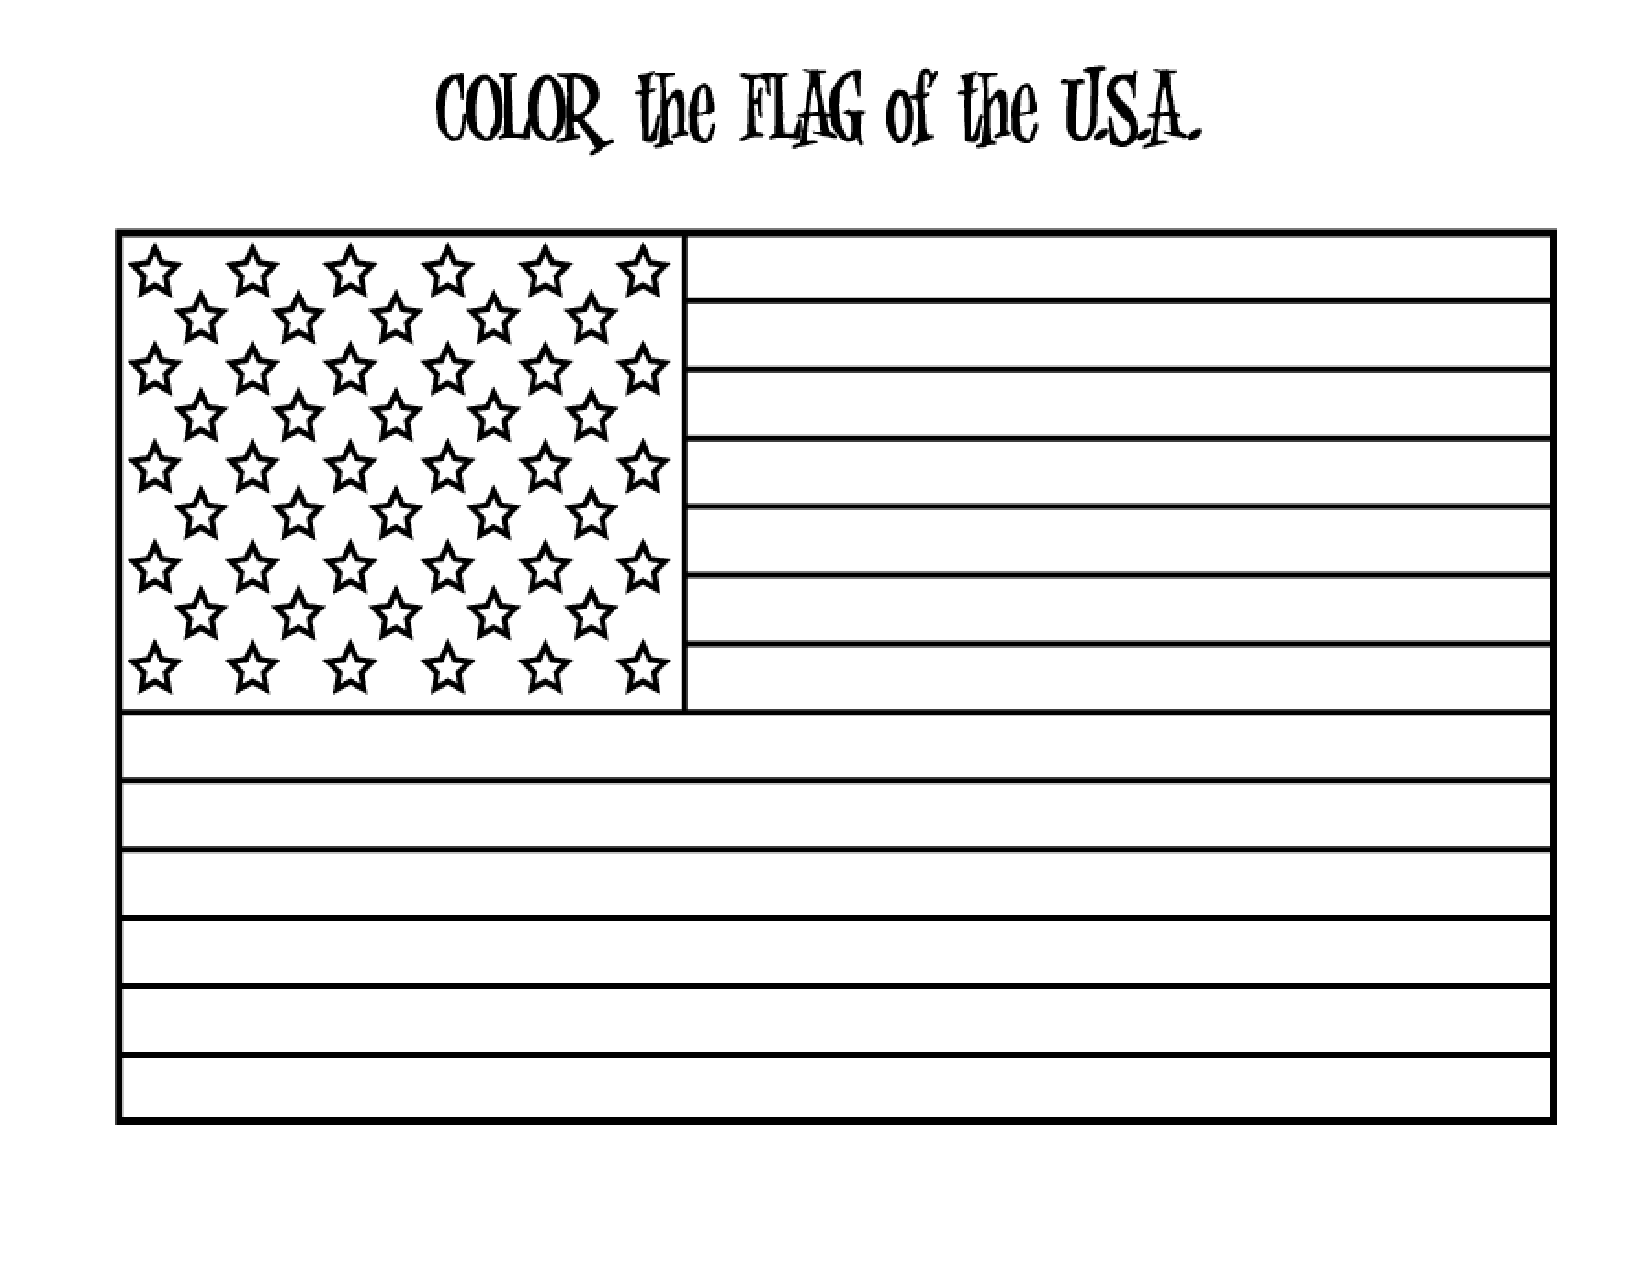 13 colonies american flag coloring page photo - 1